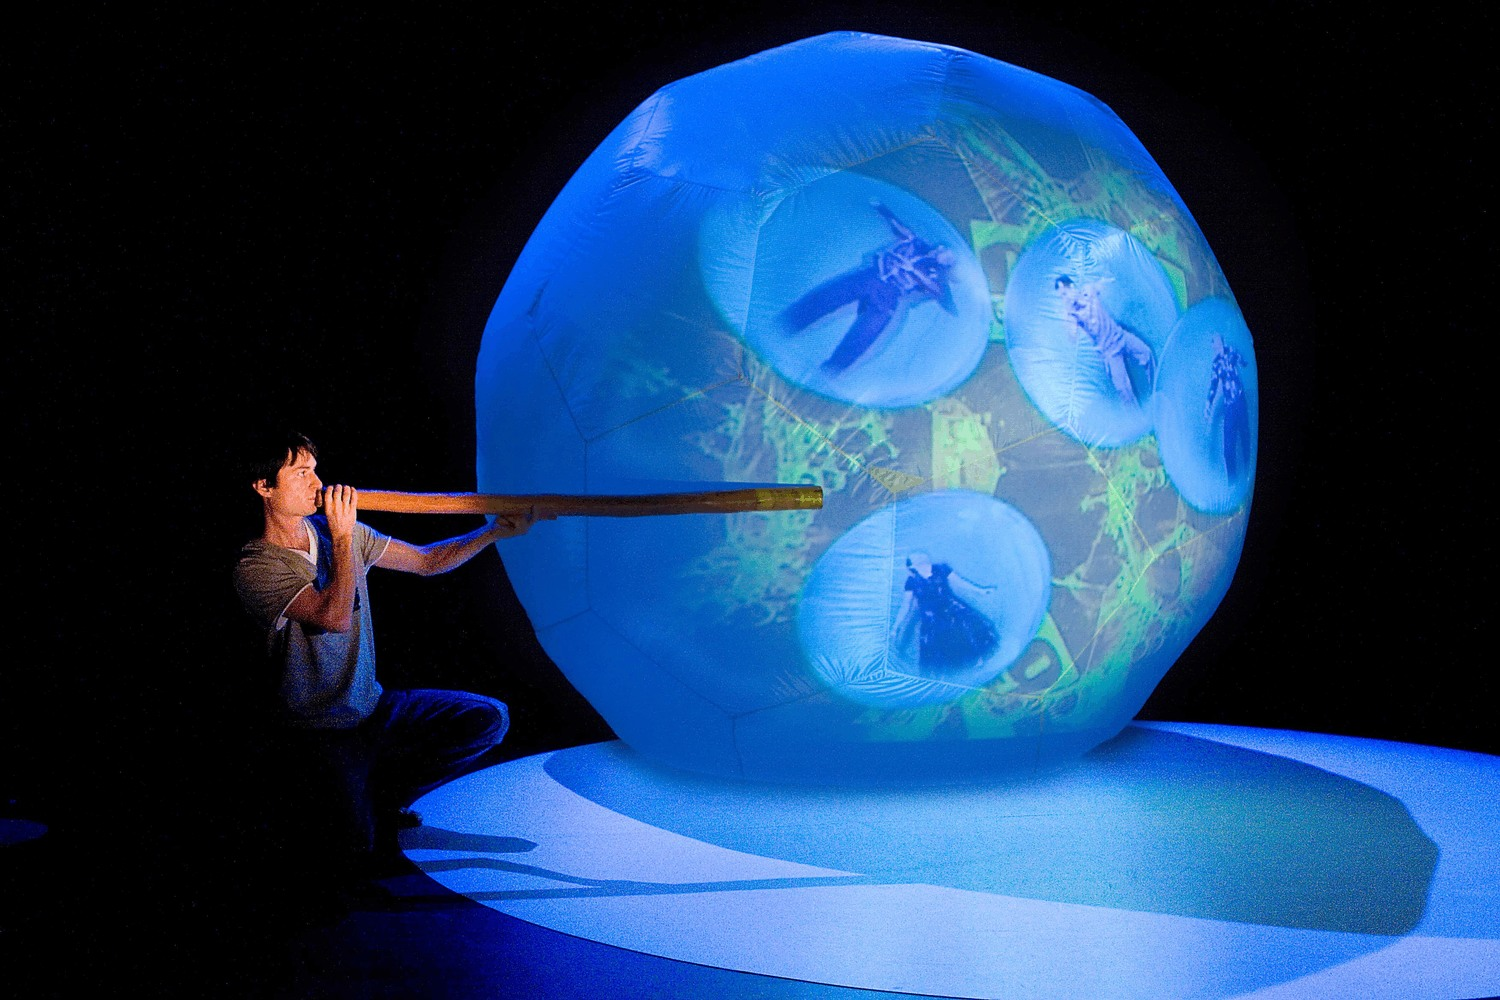 A man in shadow, standing on a glowing blue floor,  plays a diggeridoo in front of a giant ball filled with four tumbling performers spiralling in mid air.